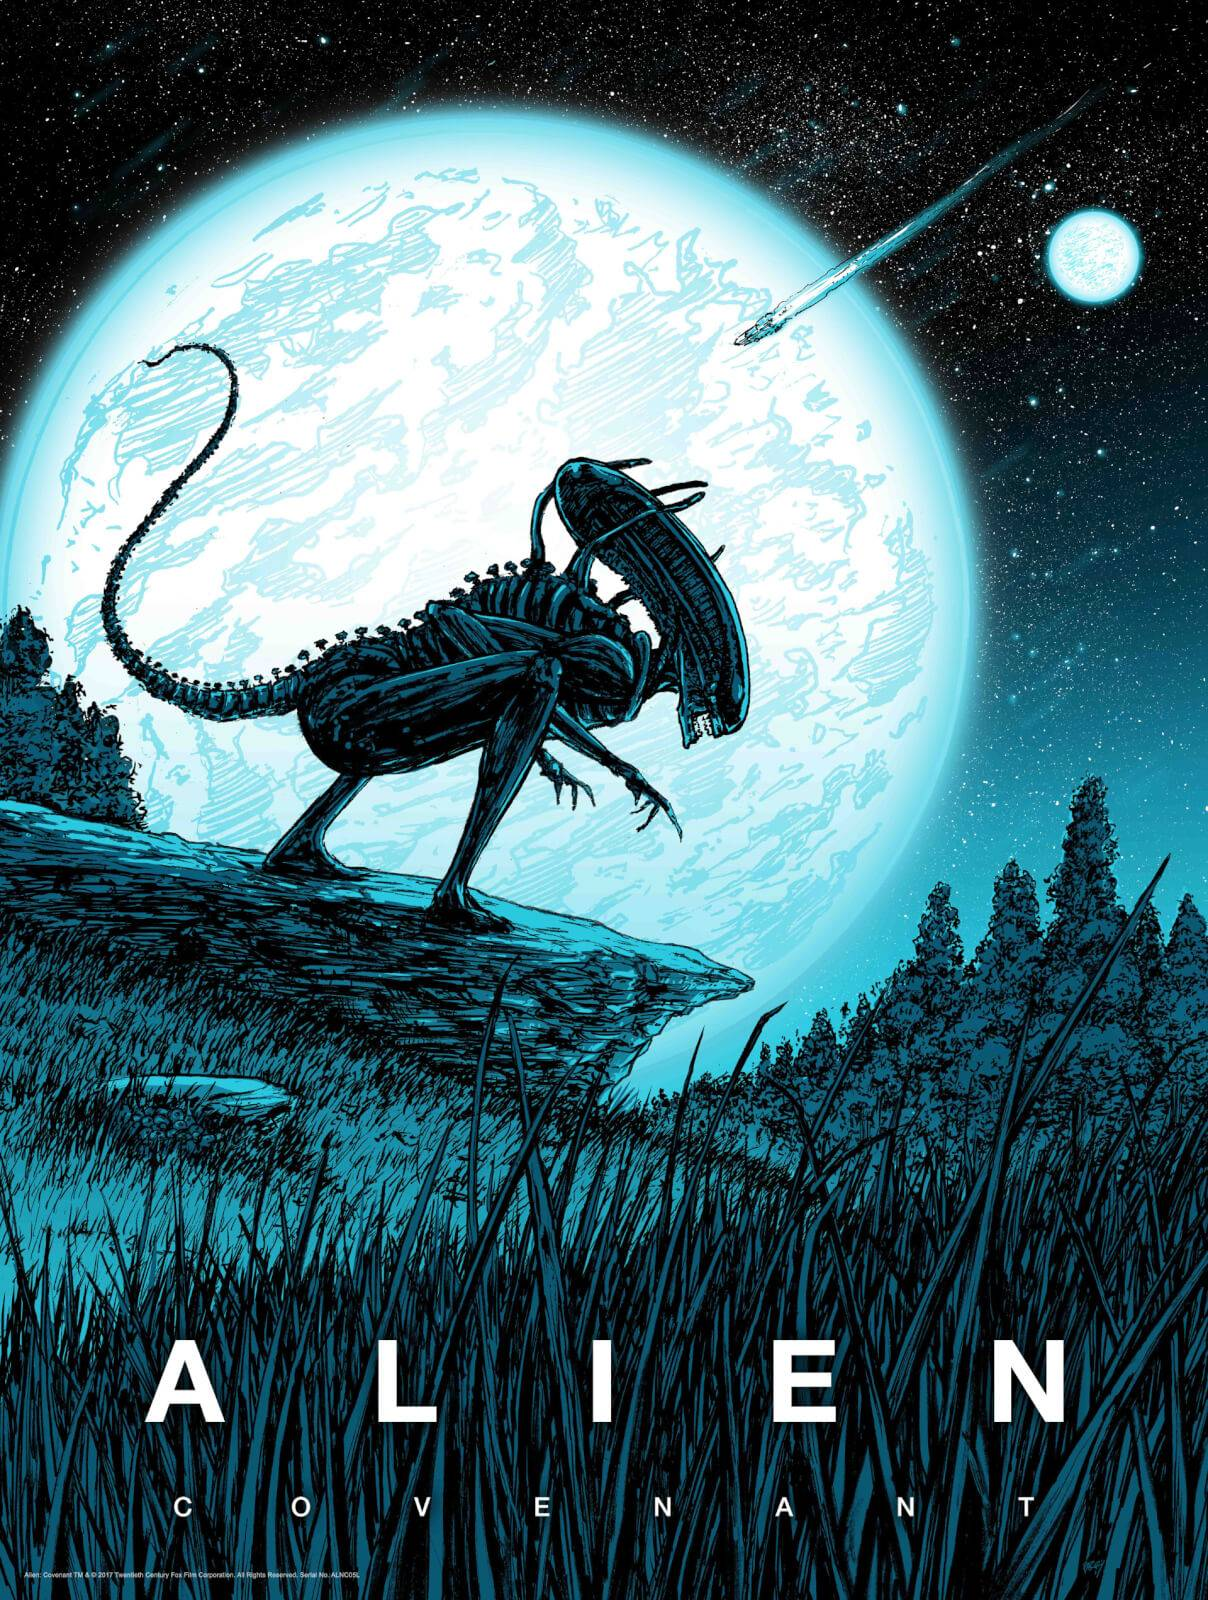 Acme Archives Alien Covenant By Barry Blankenship With A Glow-In-The-Dark Layer - Zavvi Exclusive Limited Edition